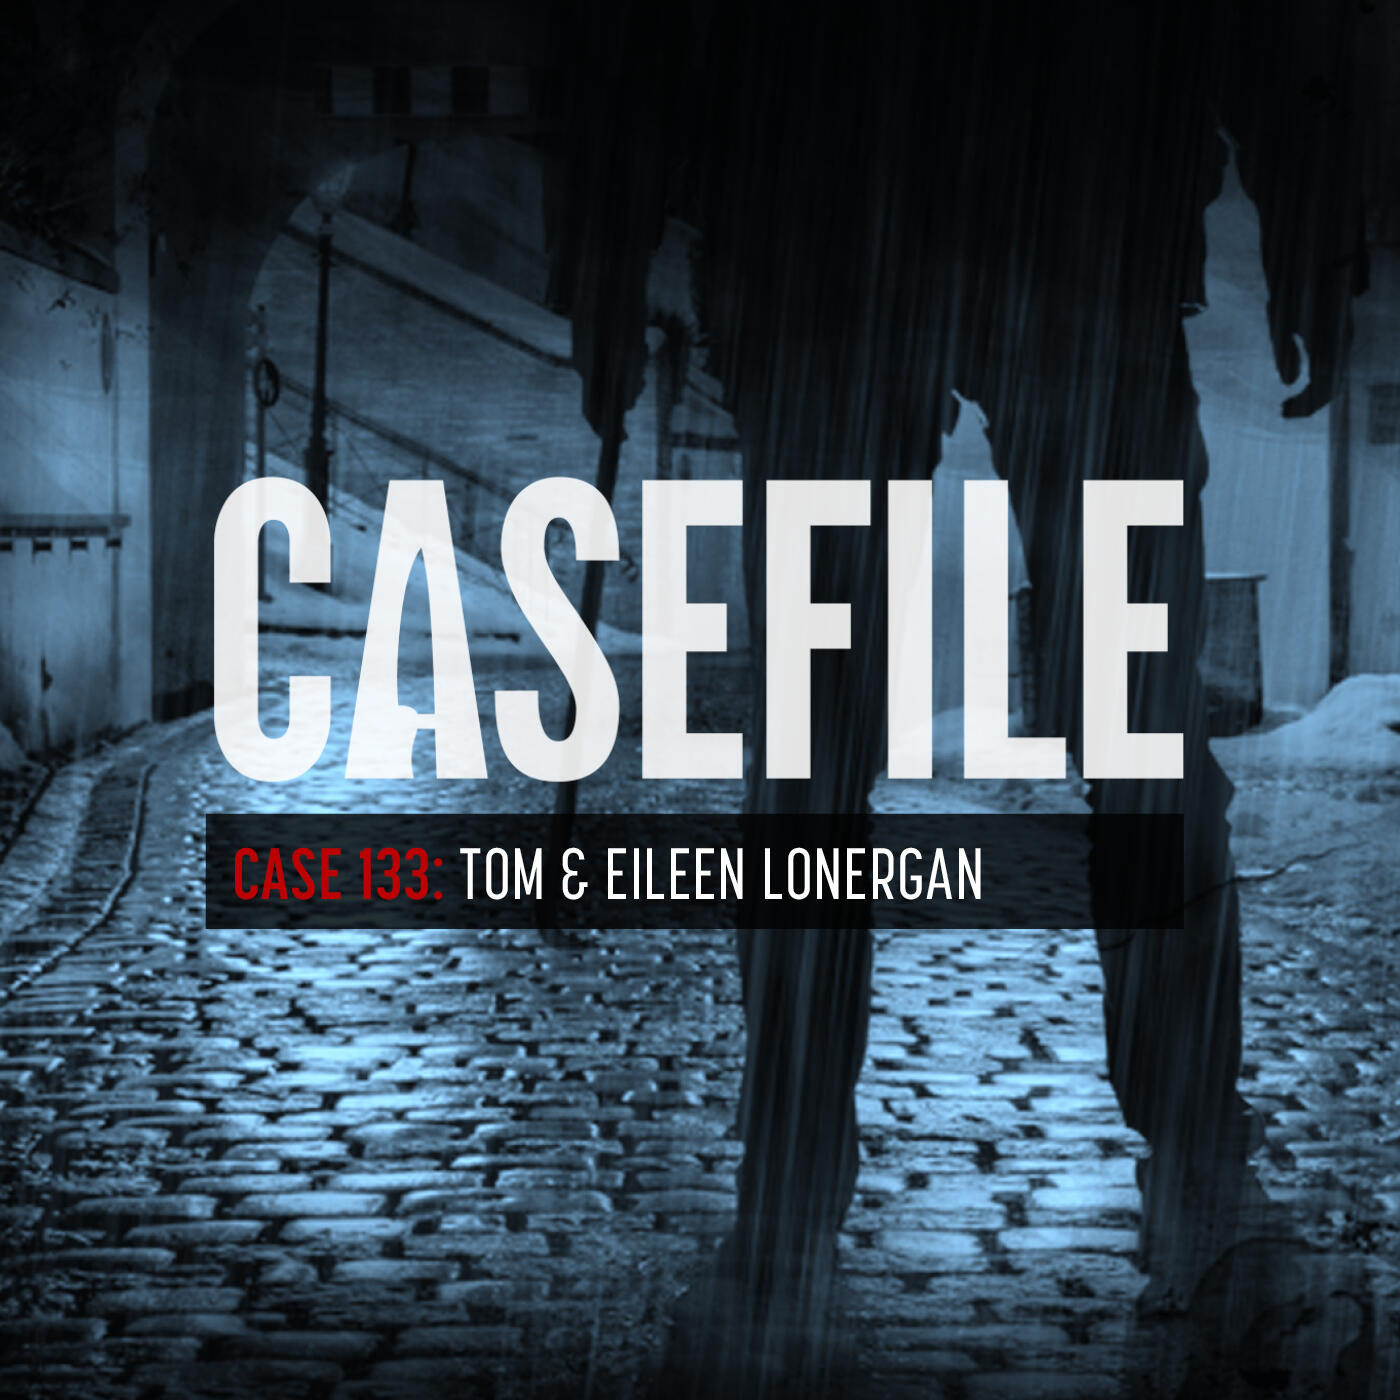 Case 133: Tom & Eileen Lonergan